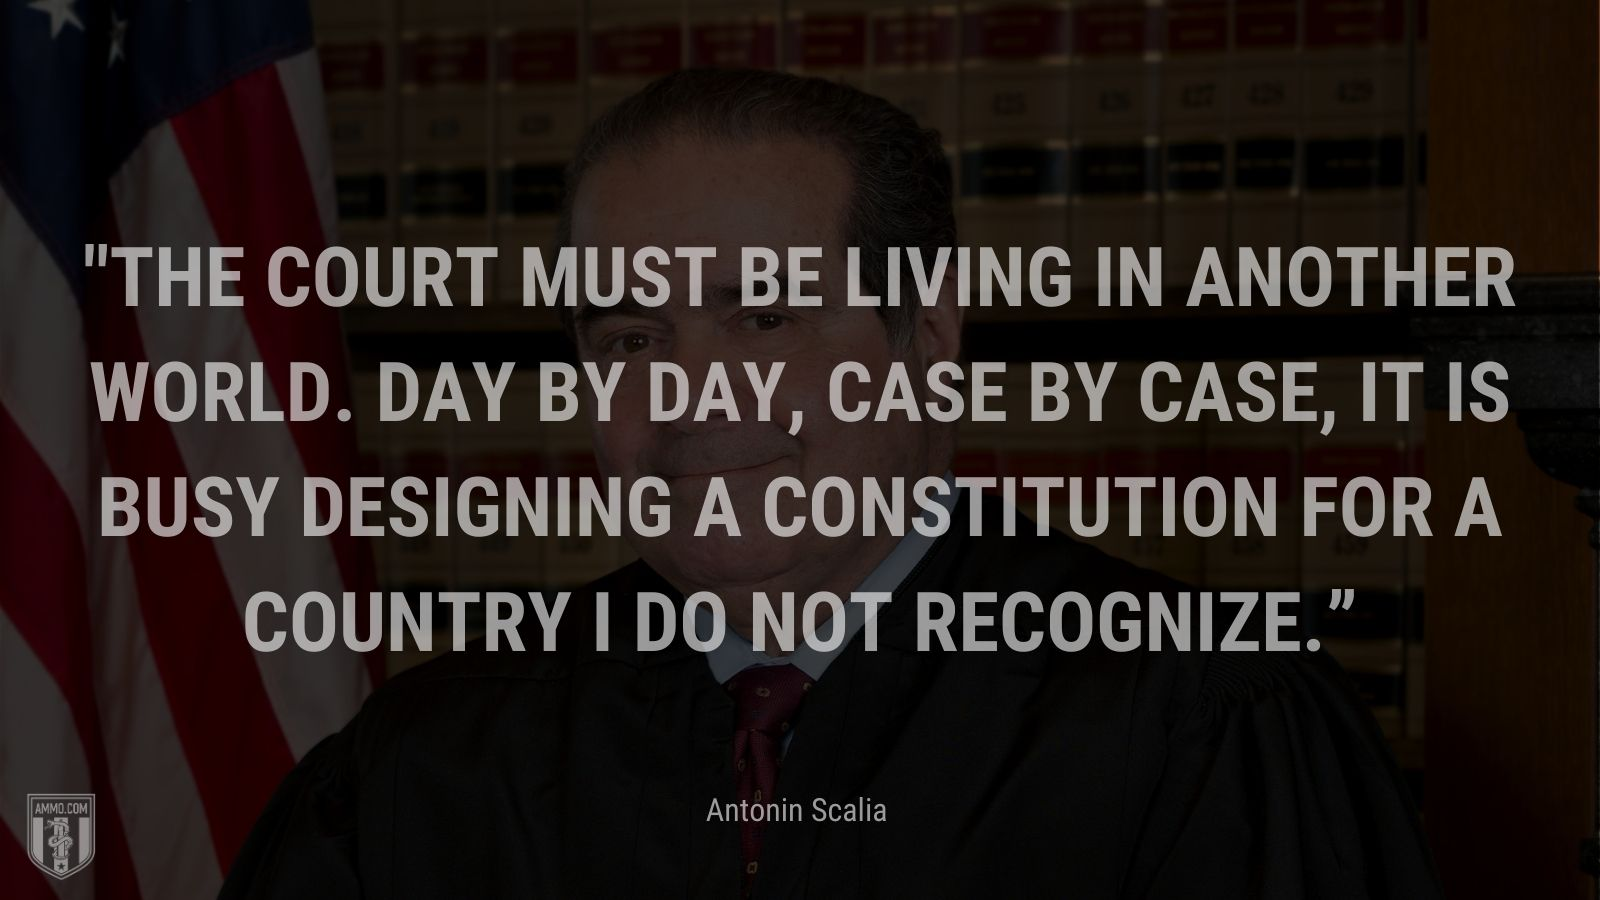 """""""The Court must be living in another world. Day by day, case by case, it is busy designing a Constitution for a country I do not recognize."""" - Antonin Scalia"""